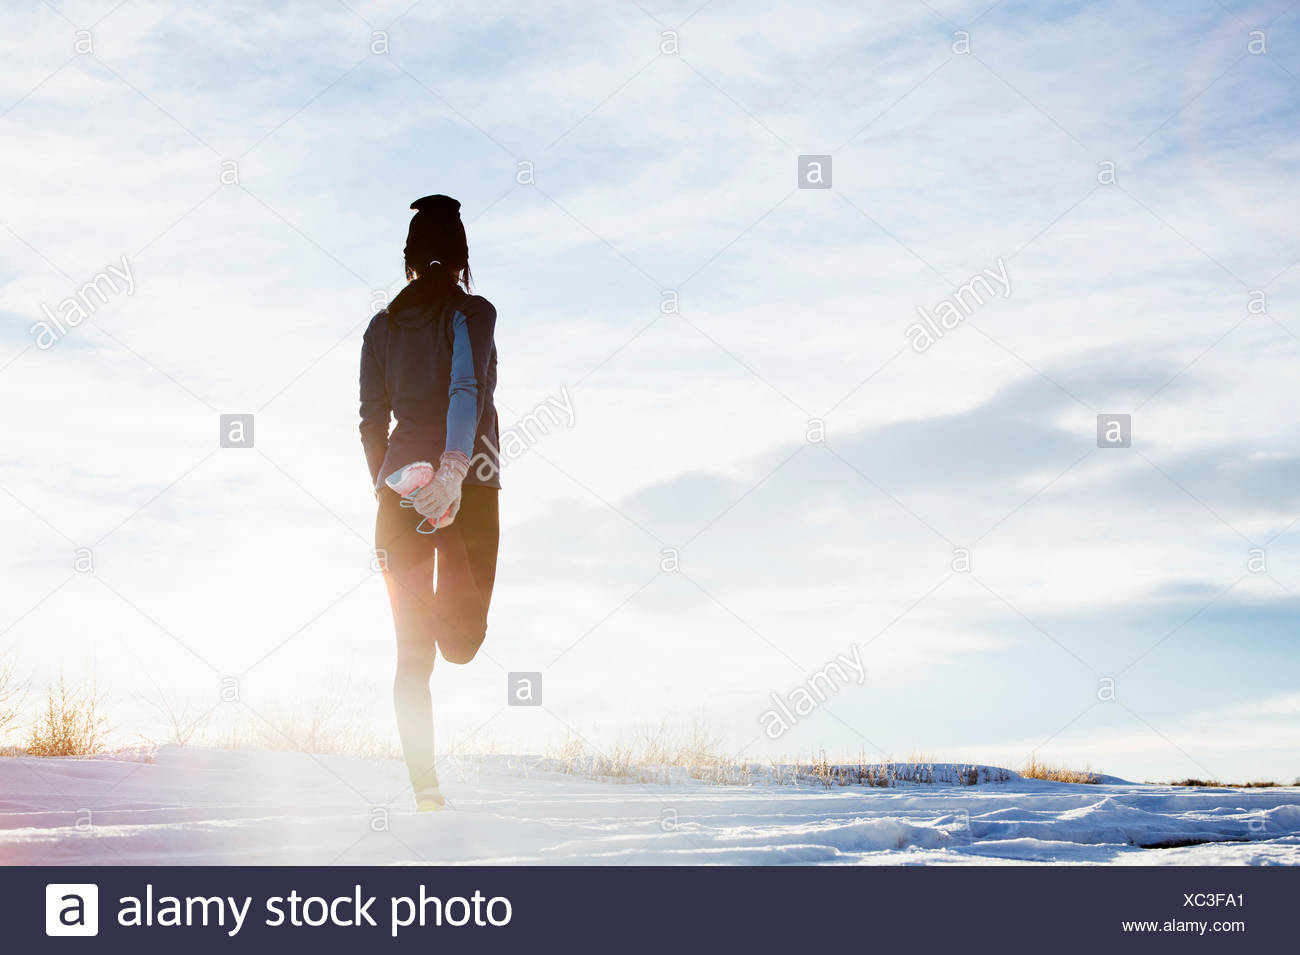 Mature Woman stretching in snow Photo Stock